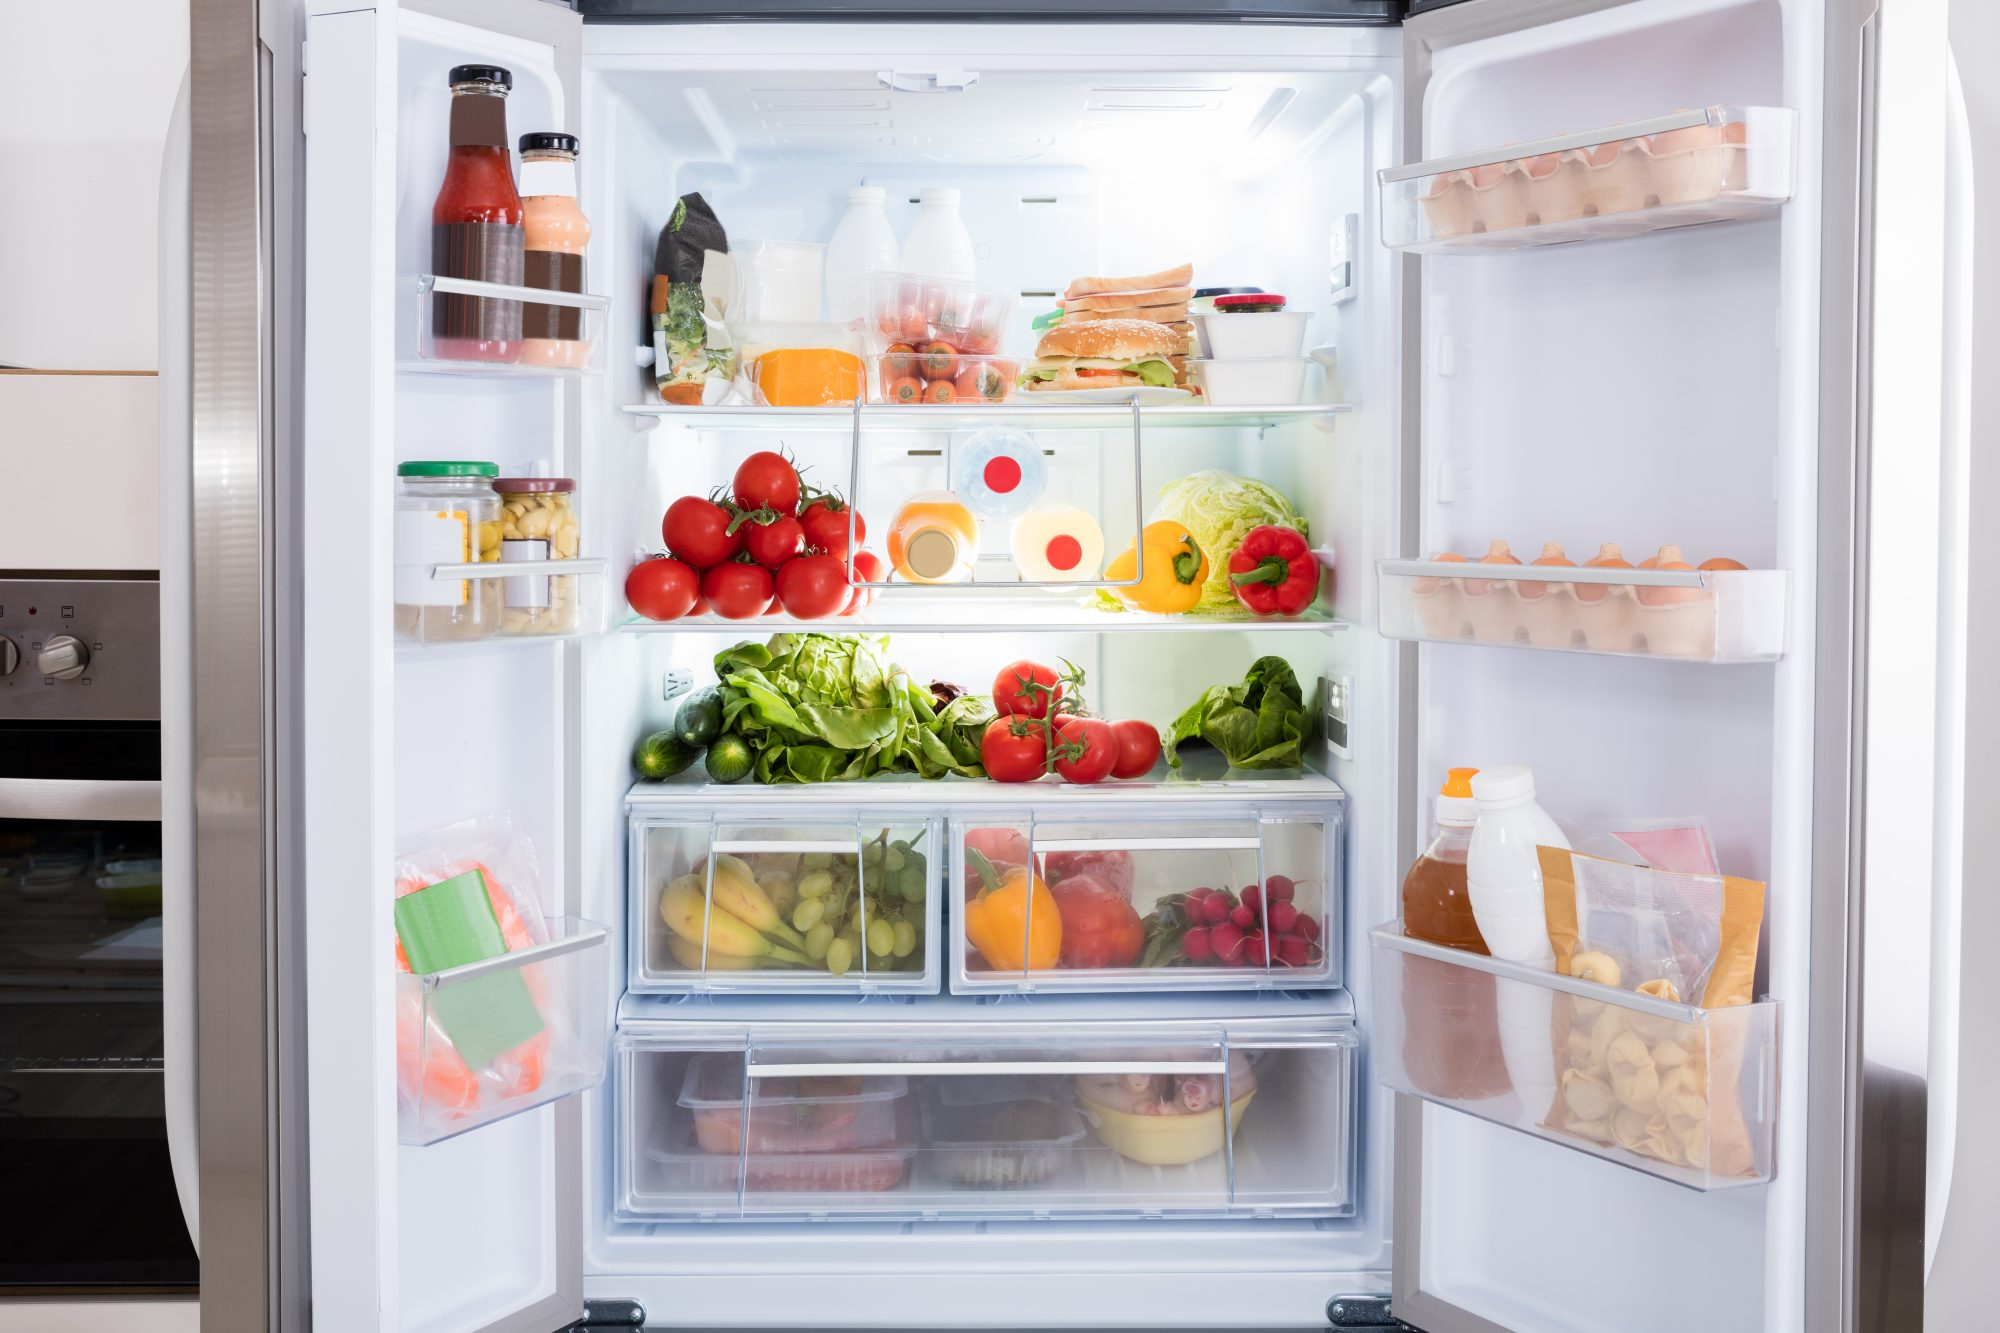 Refrigerator full of produce and groceries